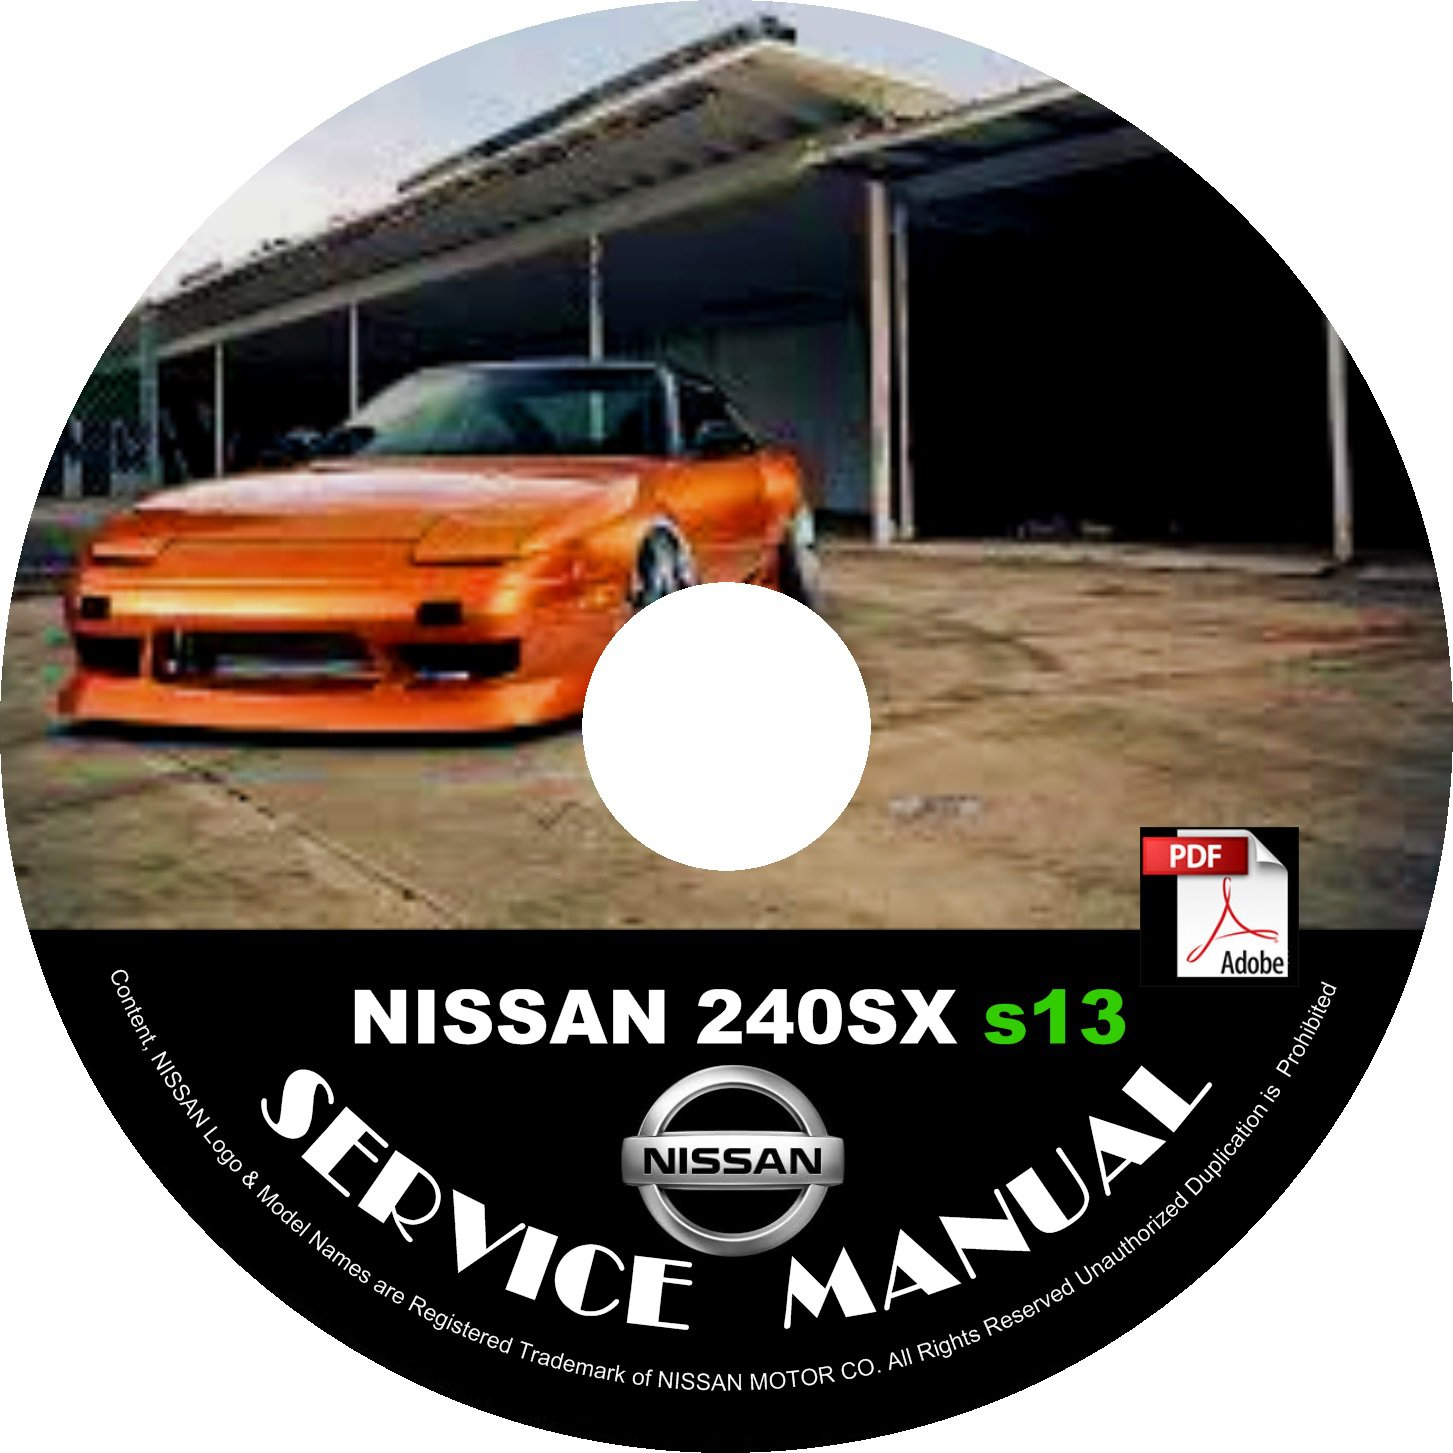 1994 94 Nissan 240sx s13 Service Repair Shop Manual on CD